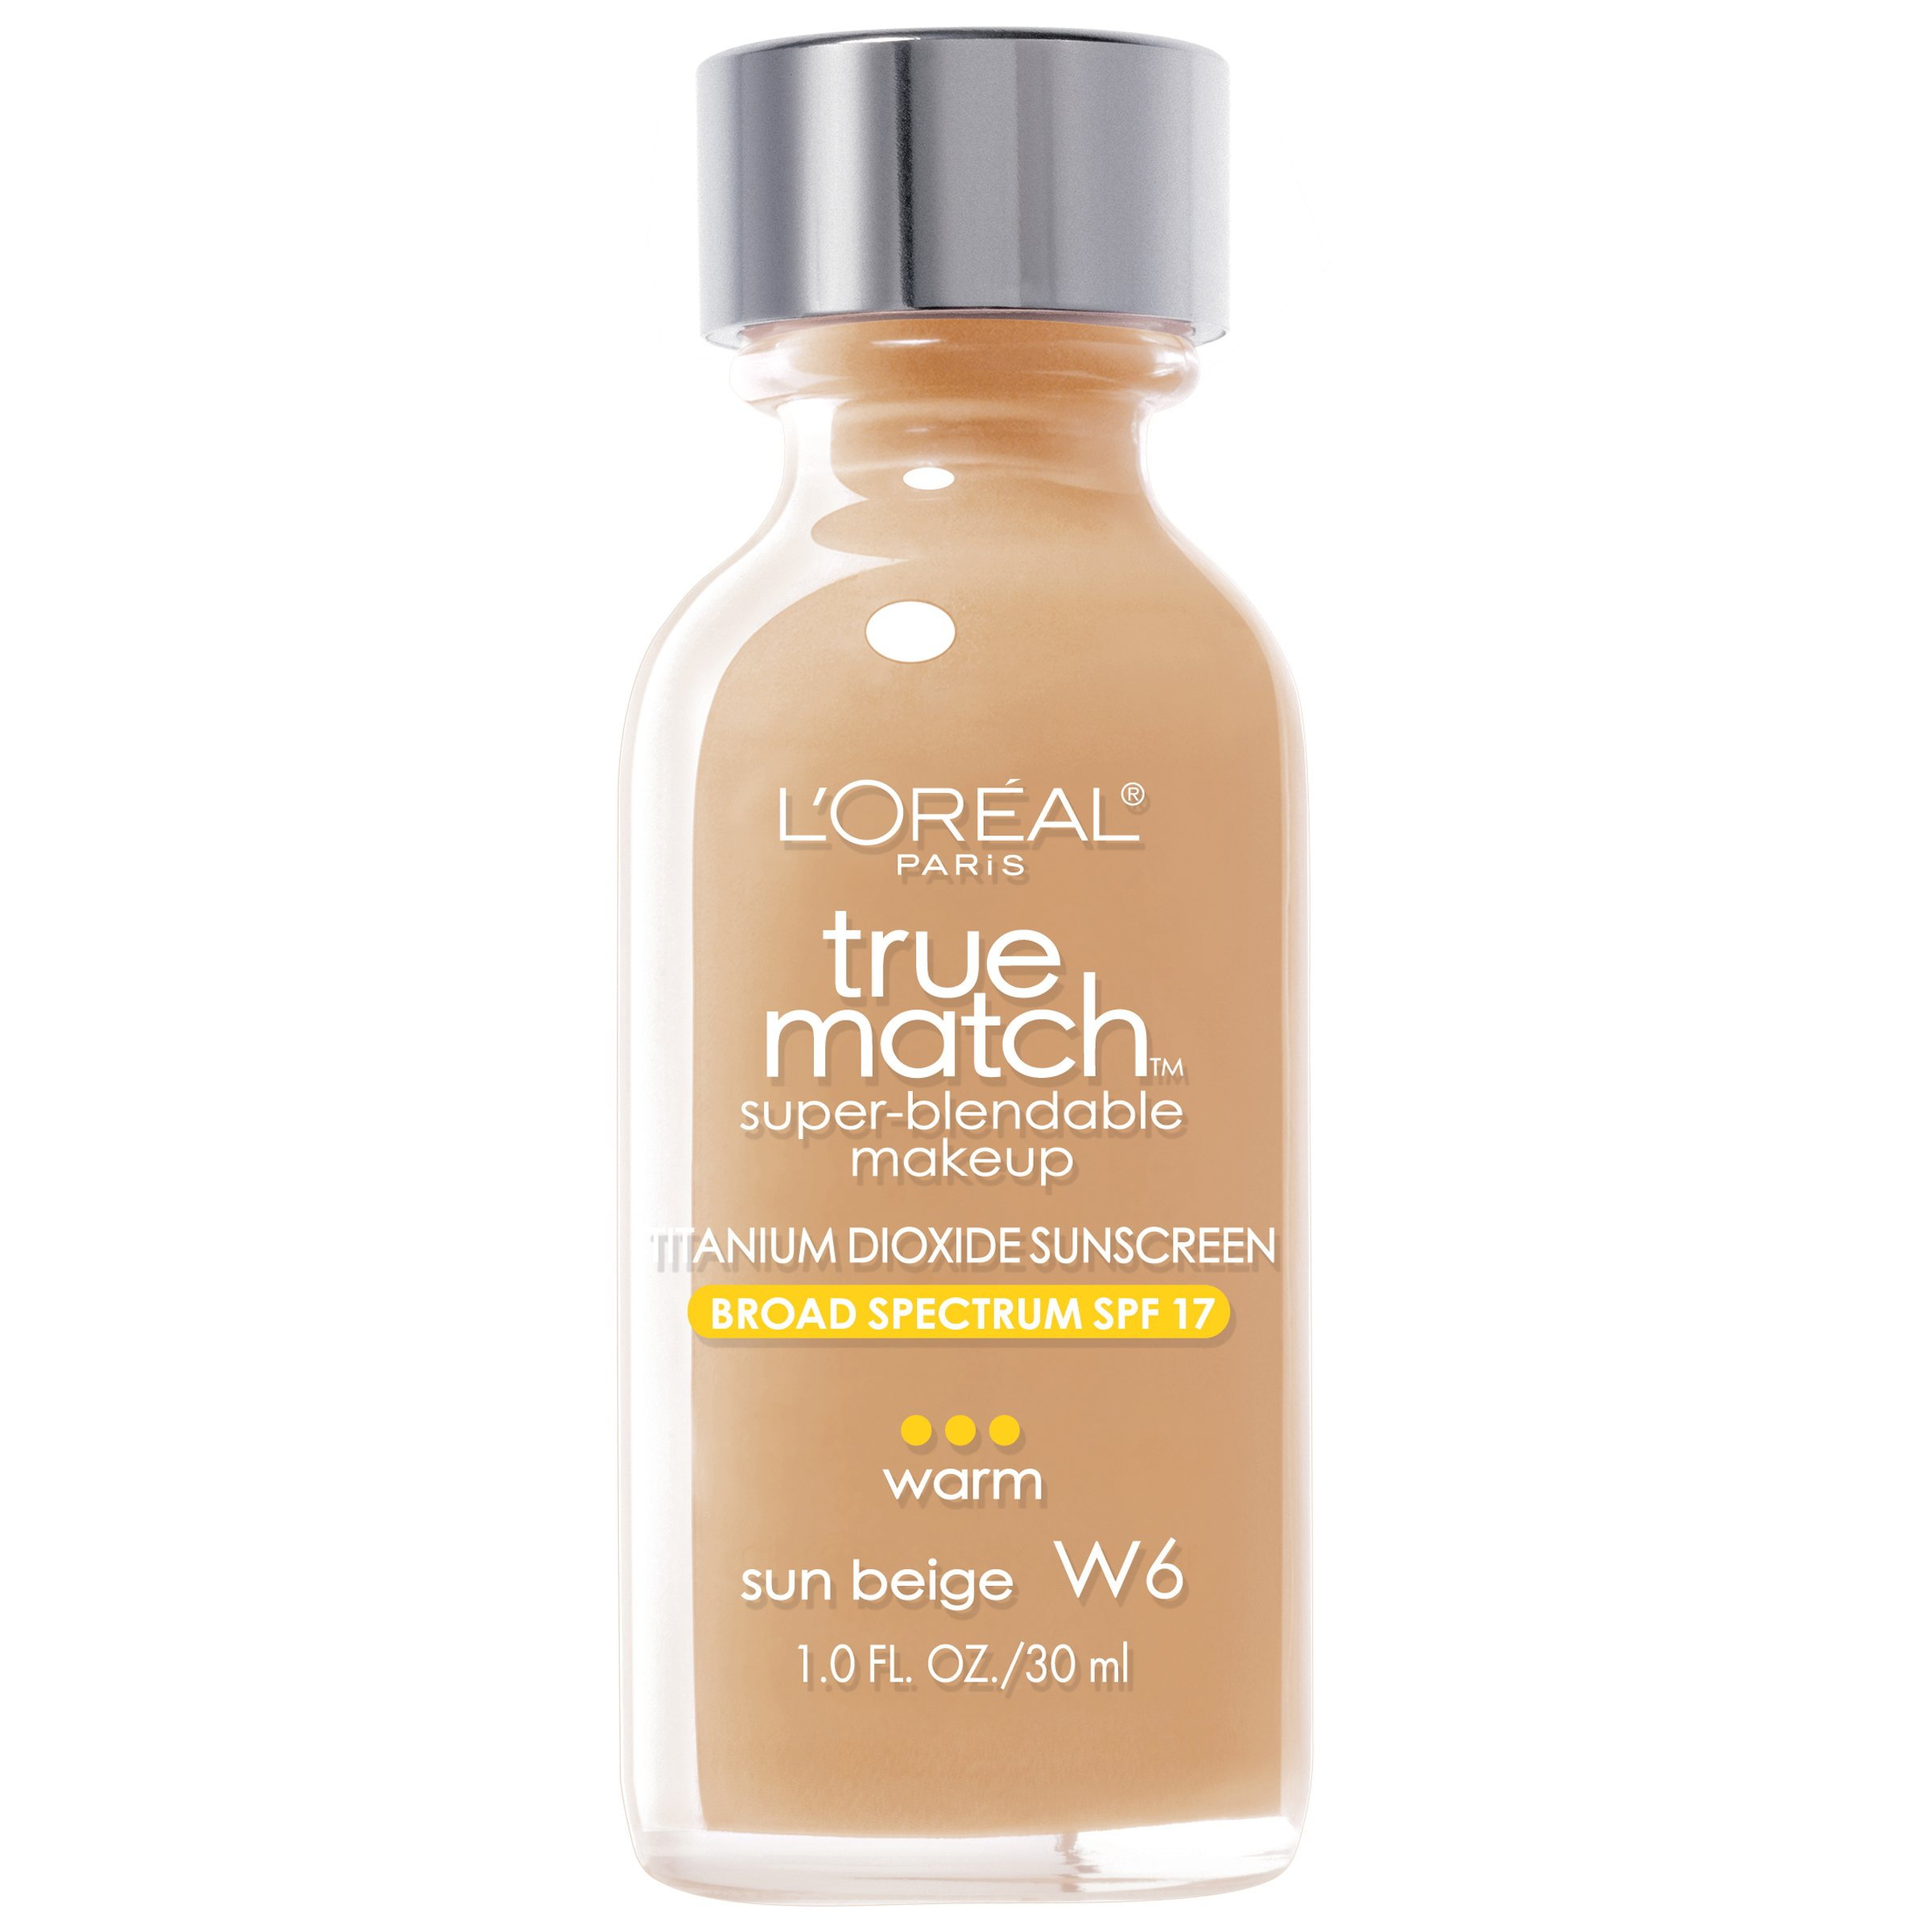 L'Oréal Paris True Match Super-Blendable Makeup, Sun Beige, 1 fl. oz.